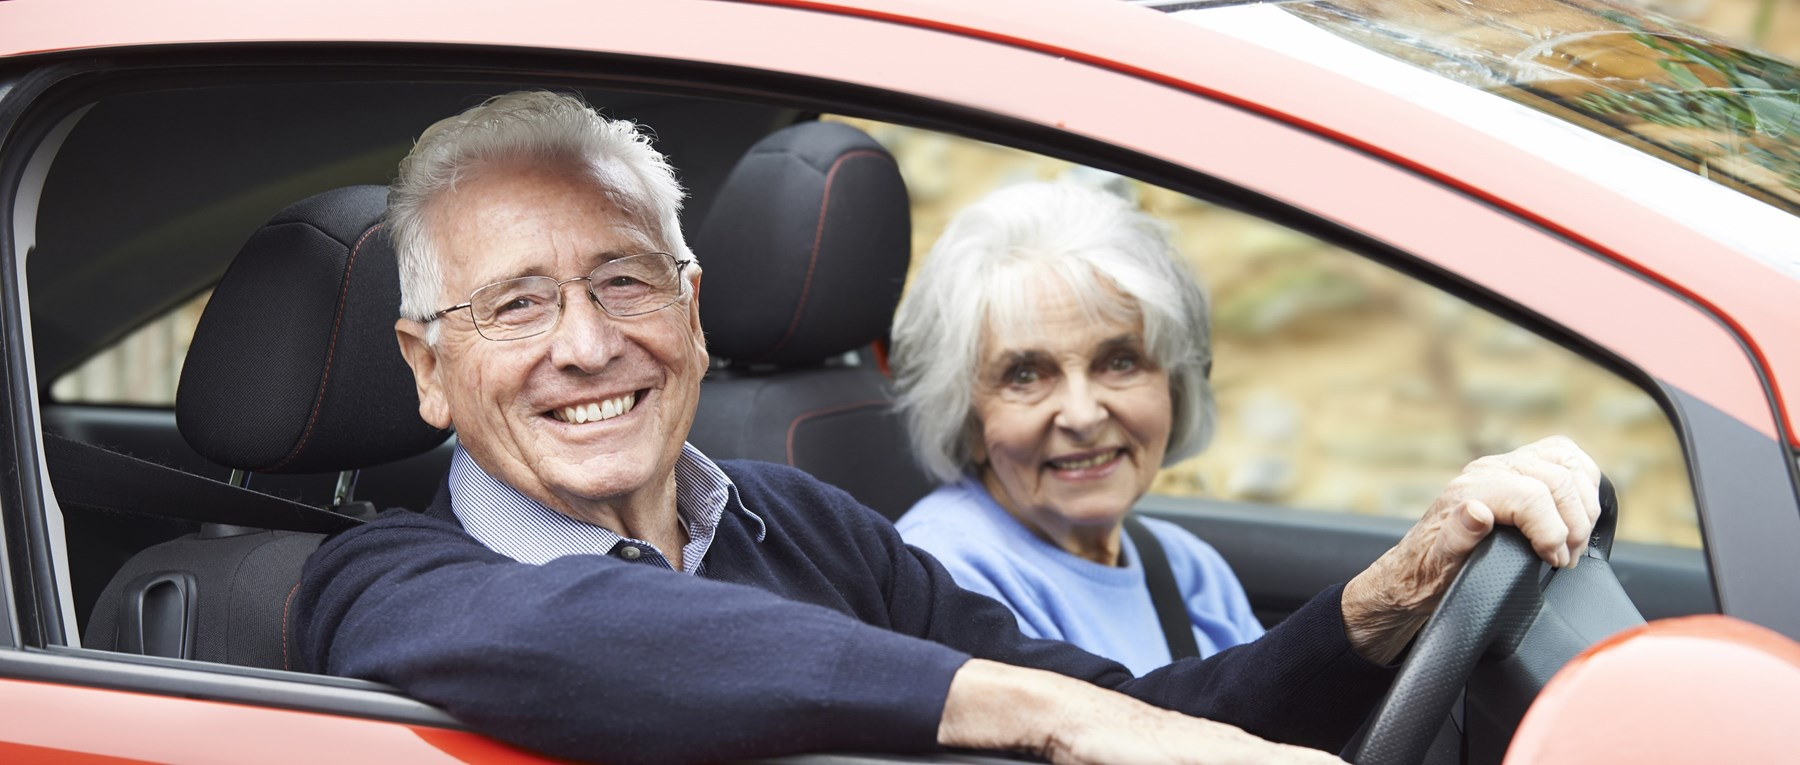 Older couple in an orange car